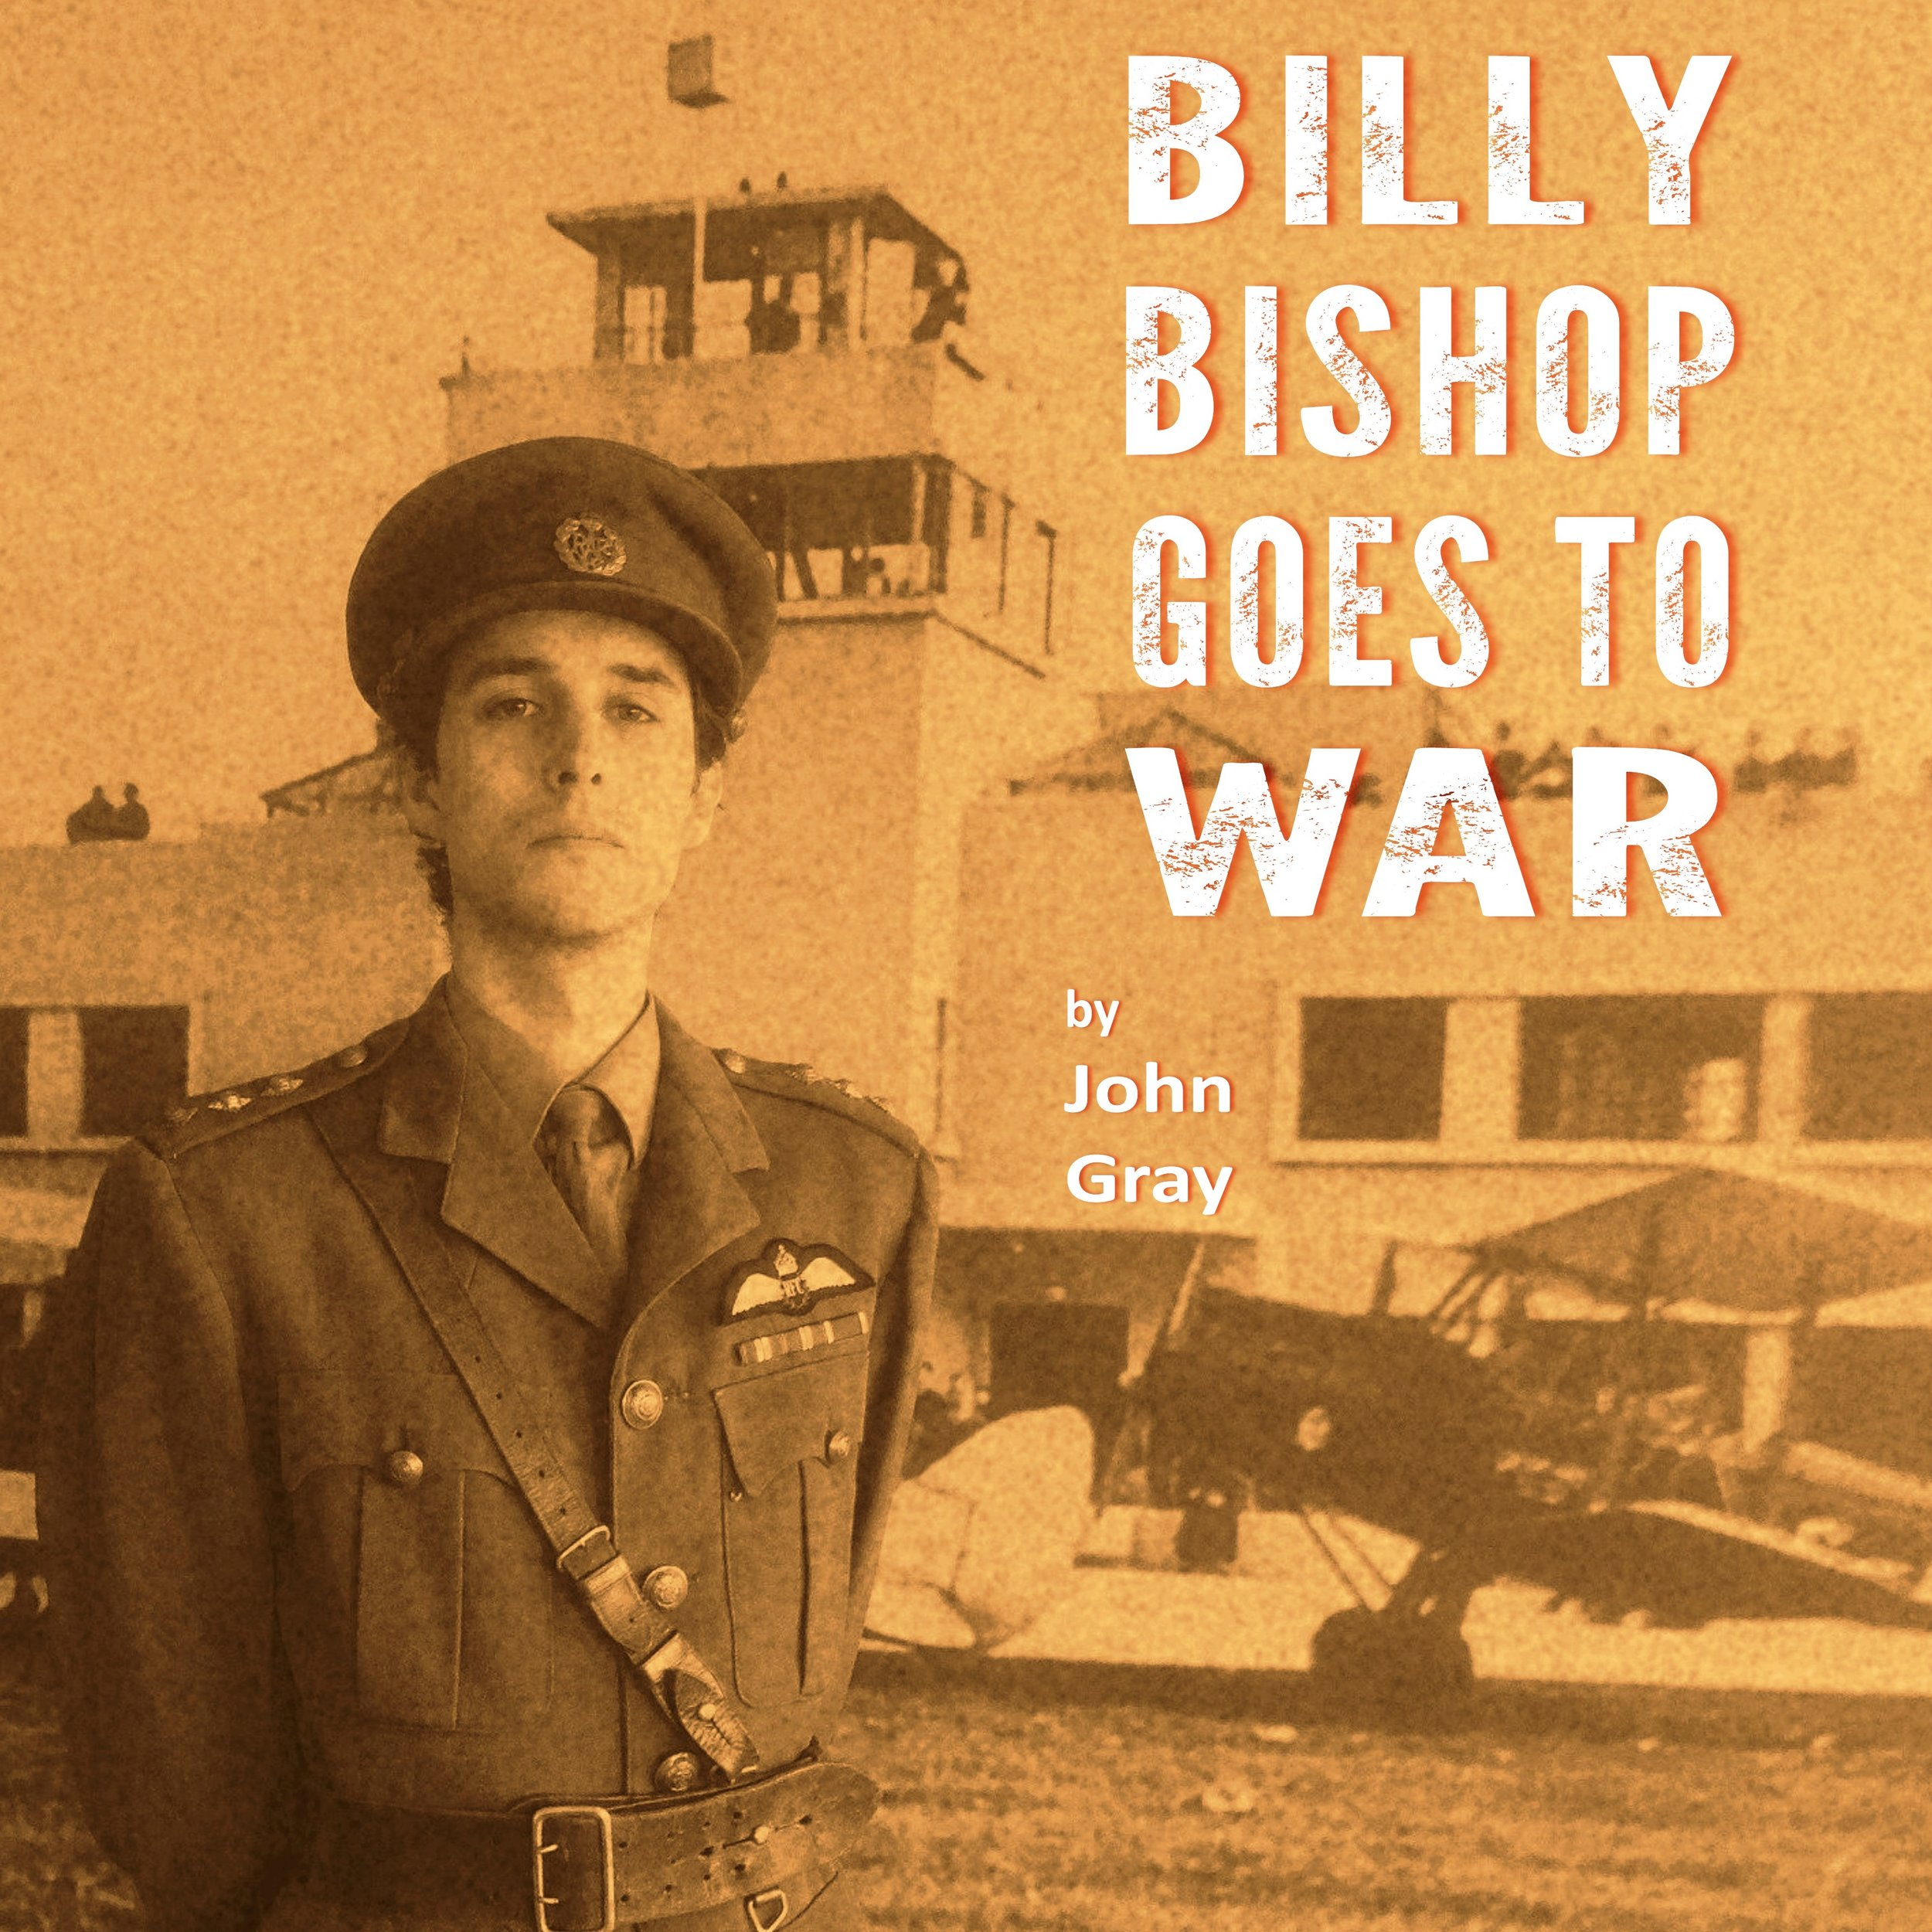 Billy Bishop Goes To War sqaure image without dates.jpg